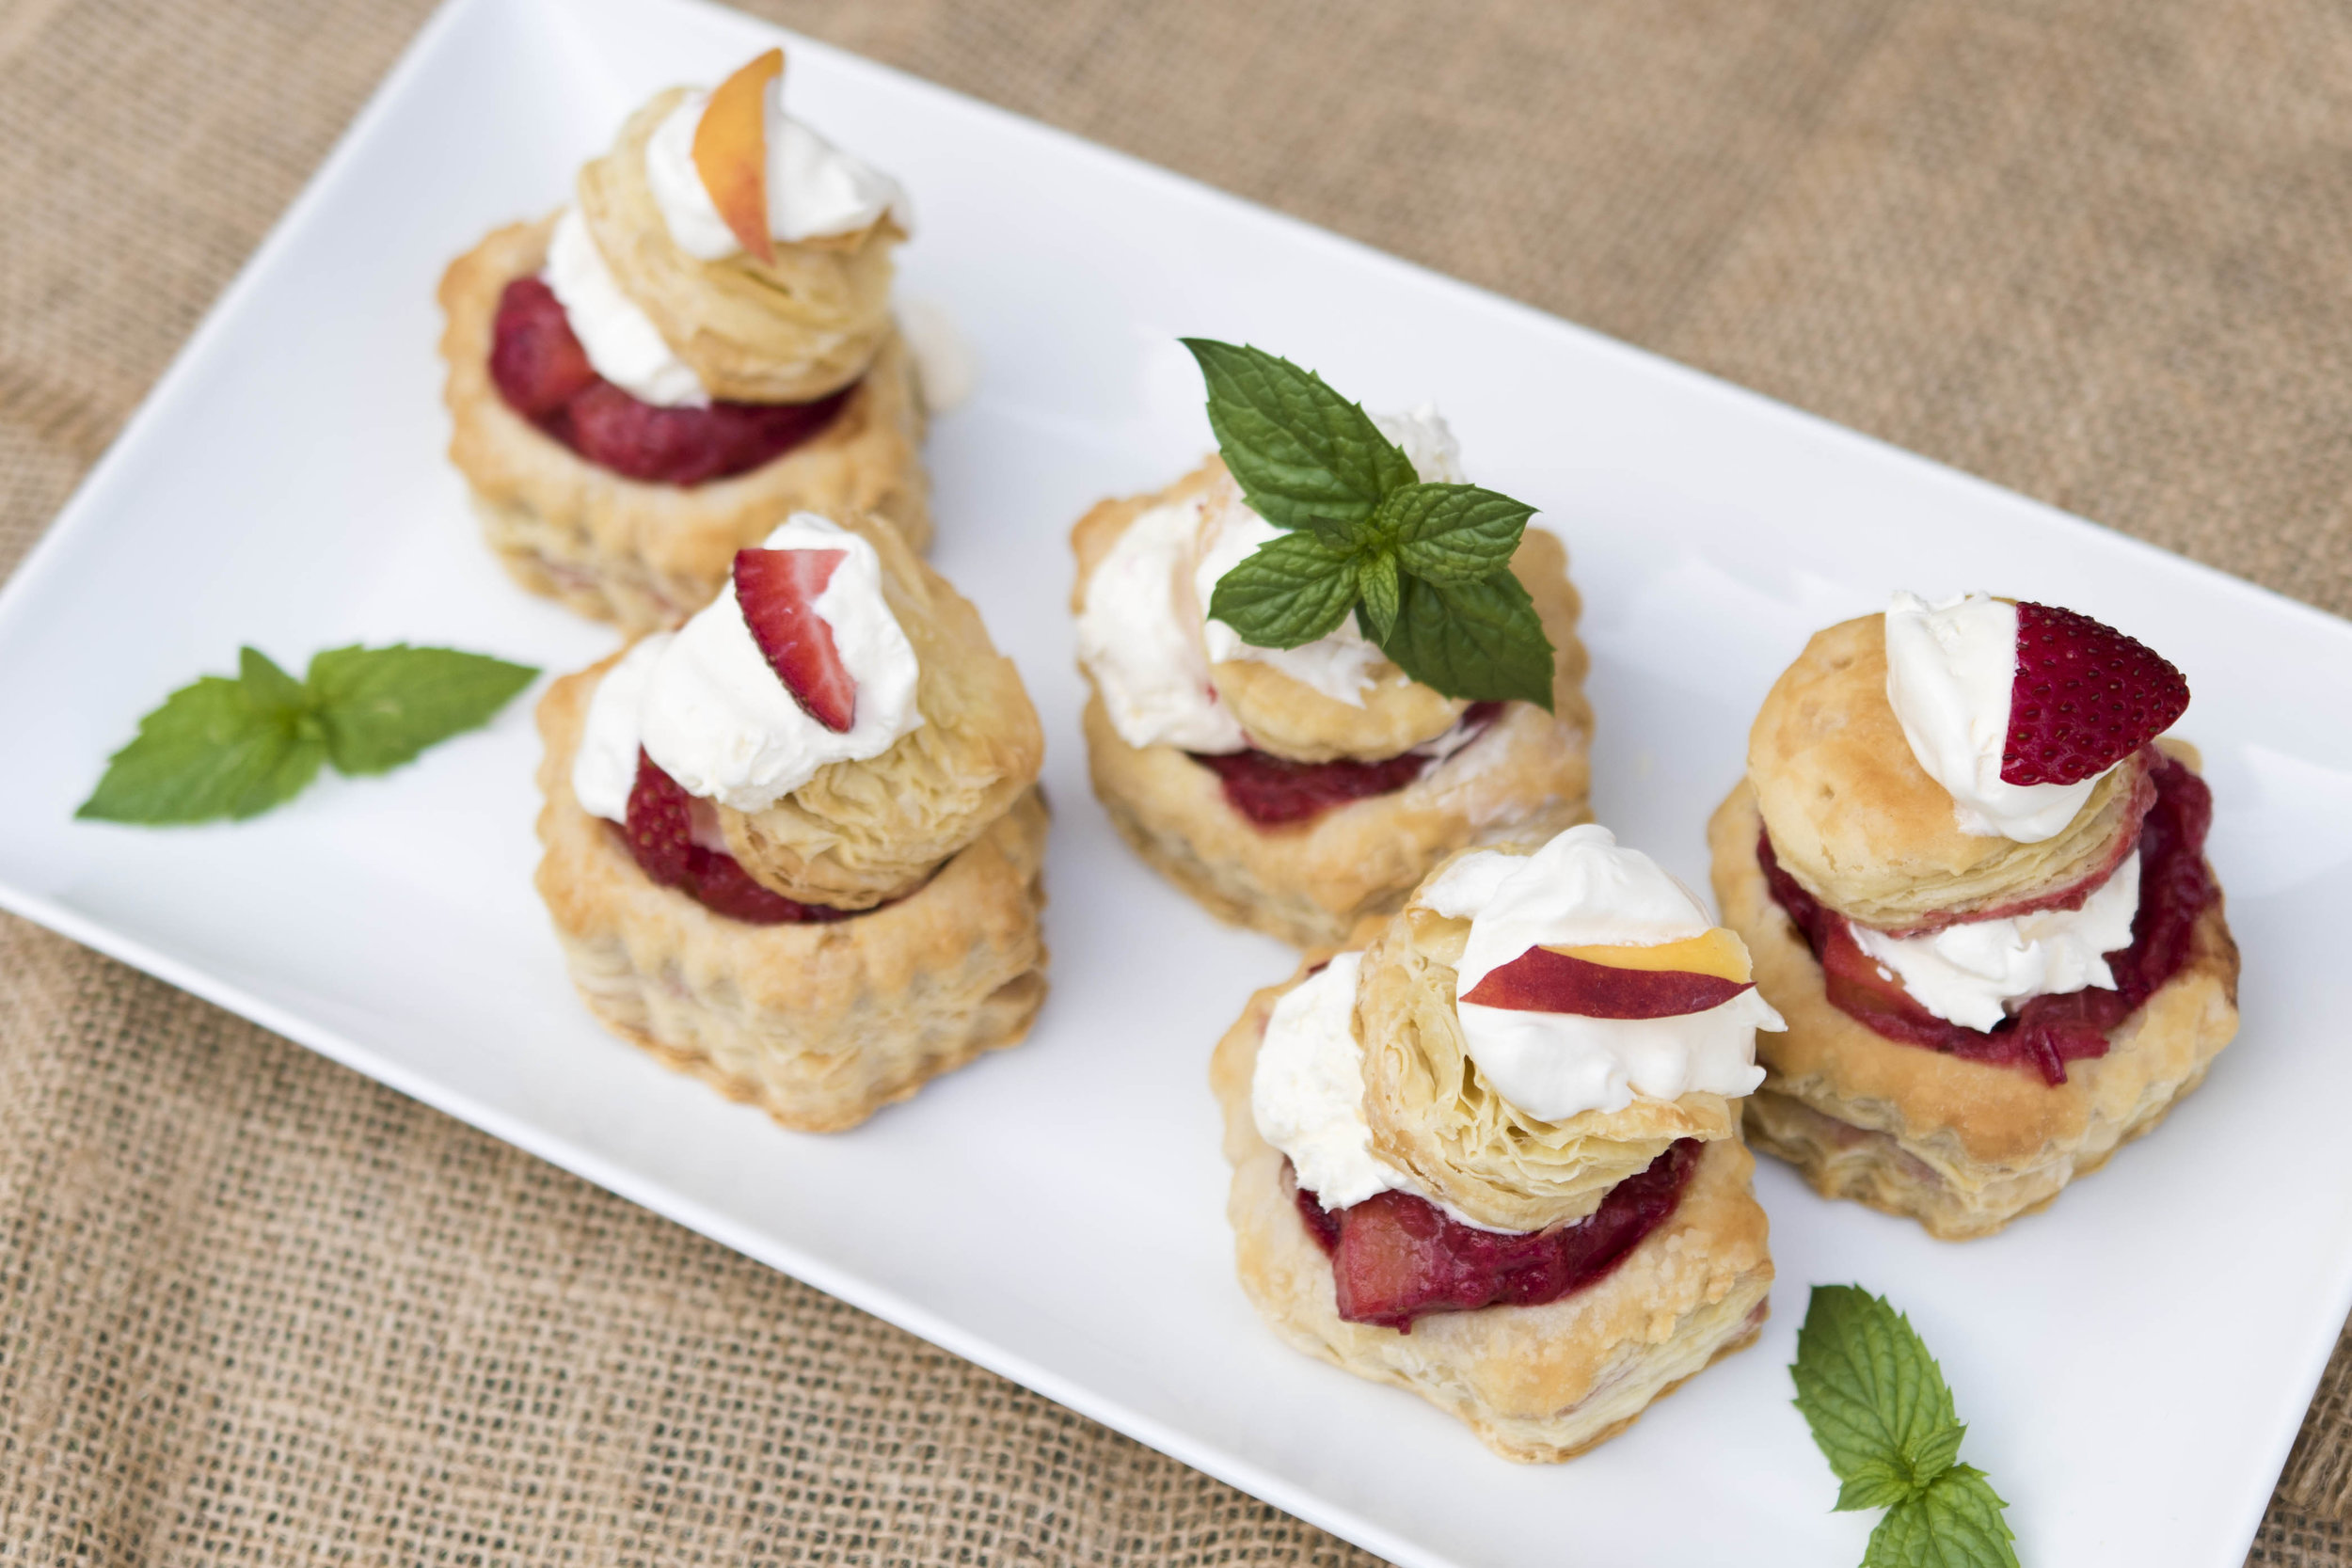 strawberry-peach-rhubarb-tarts©CopyrightCMP_2019-4848.jpg